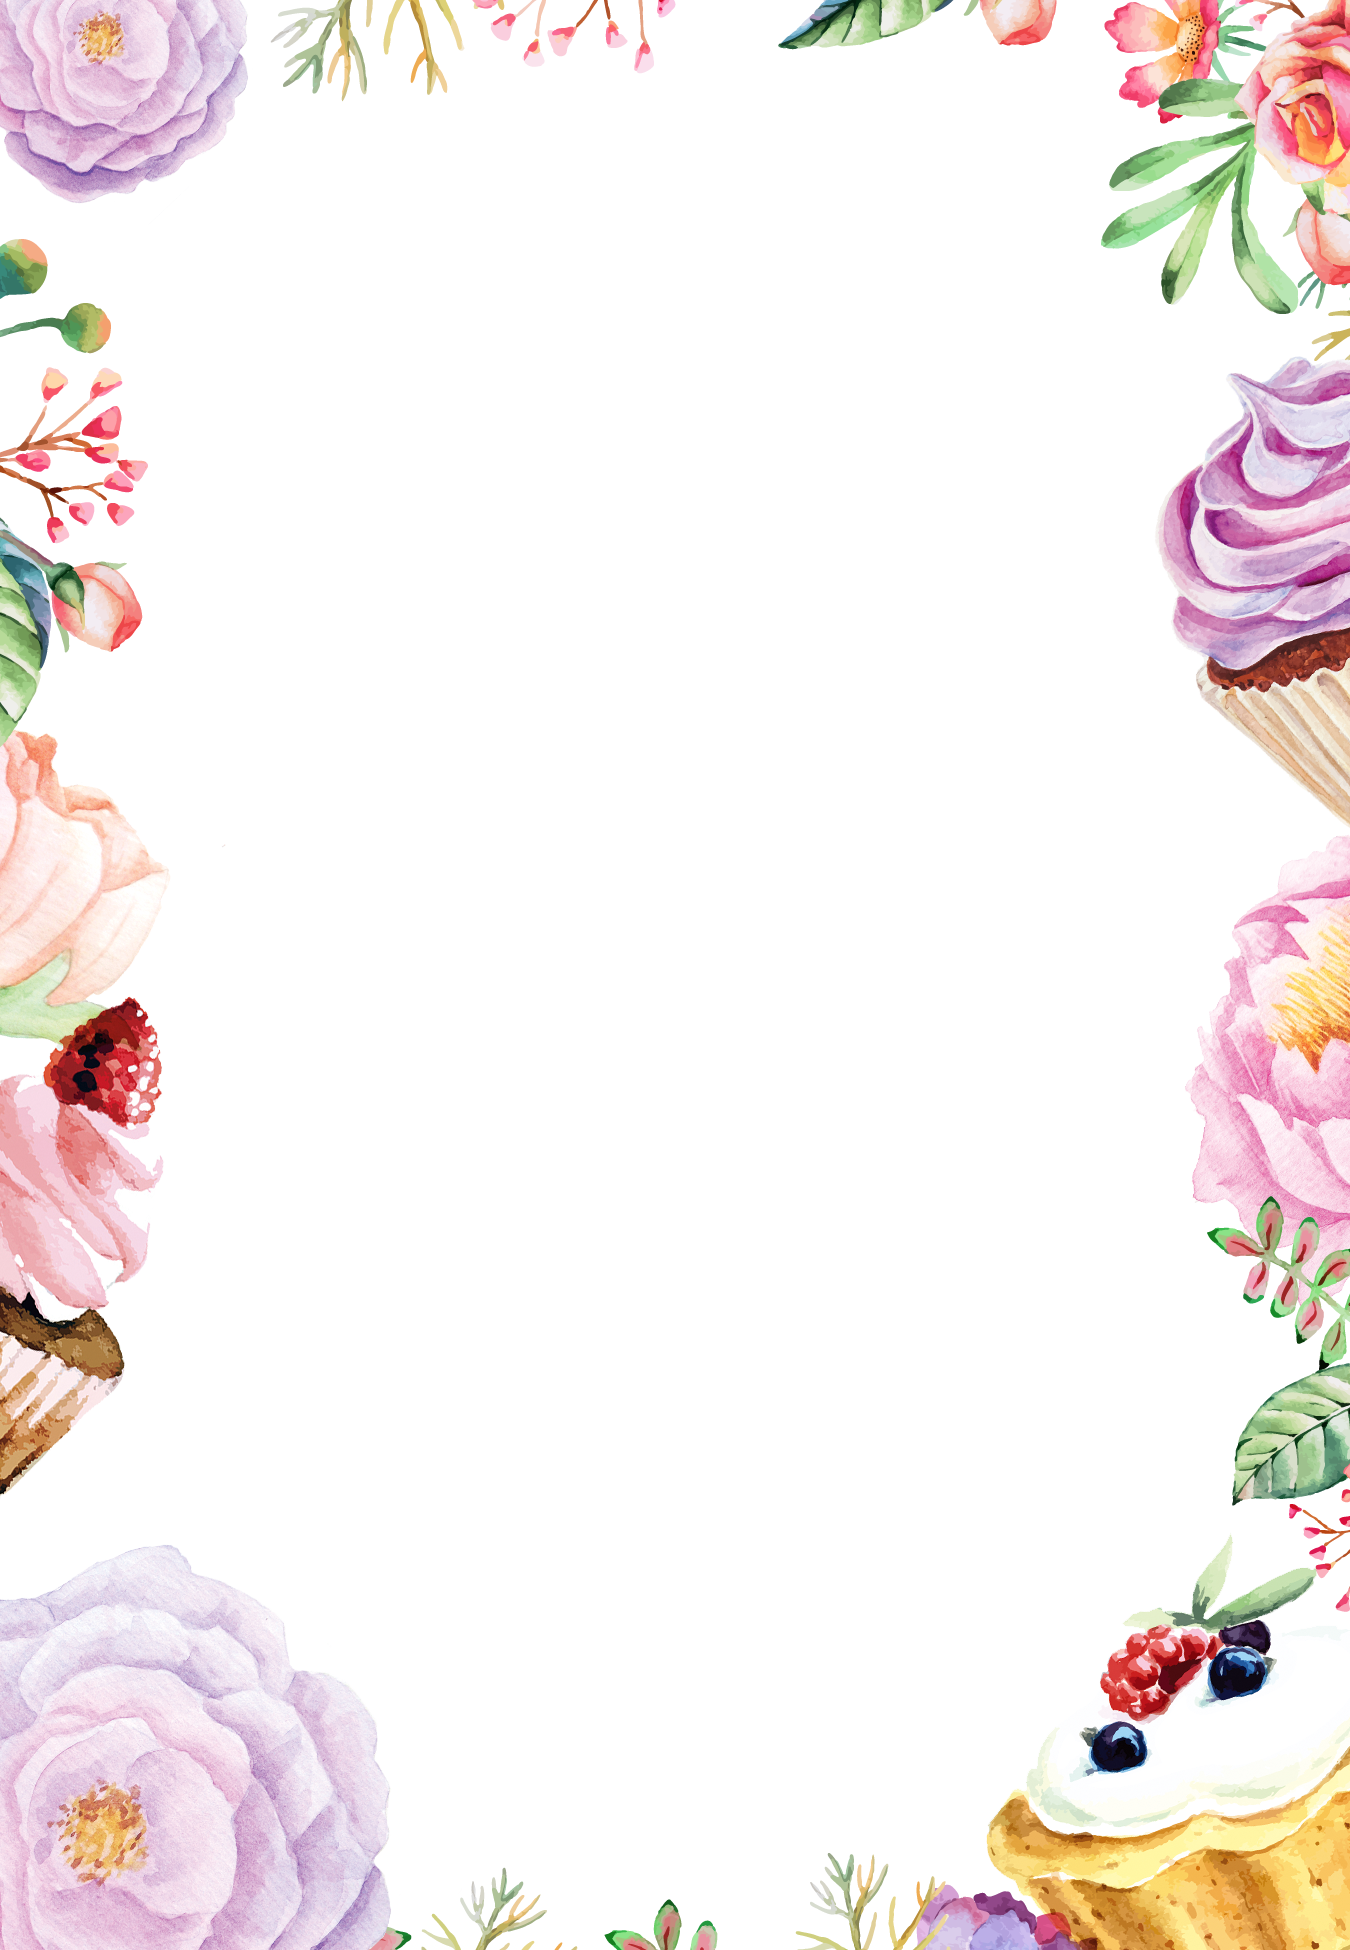 Flower Painting Watercolor Cake Flowers Border Drawing PNG Image